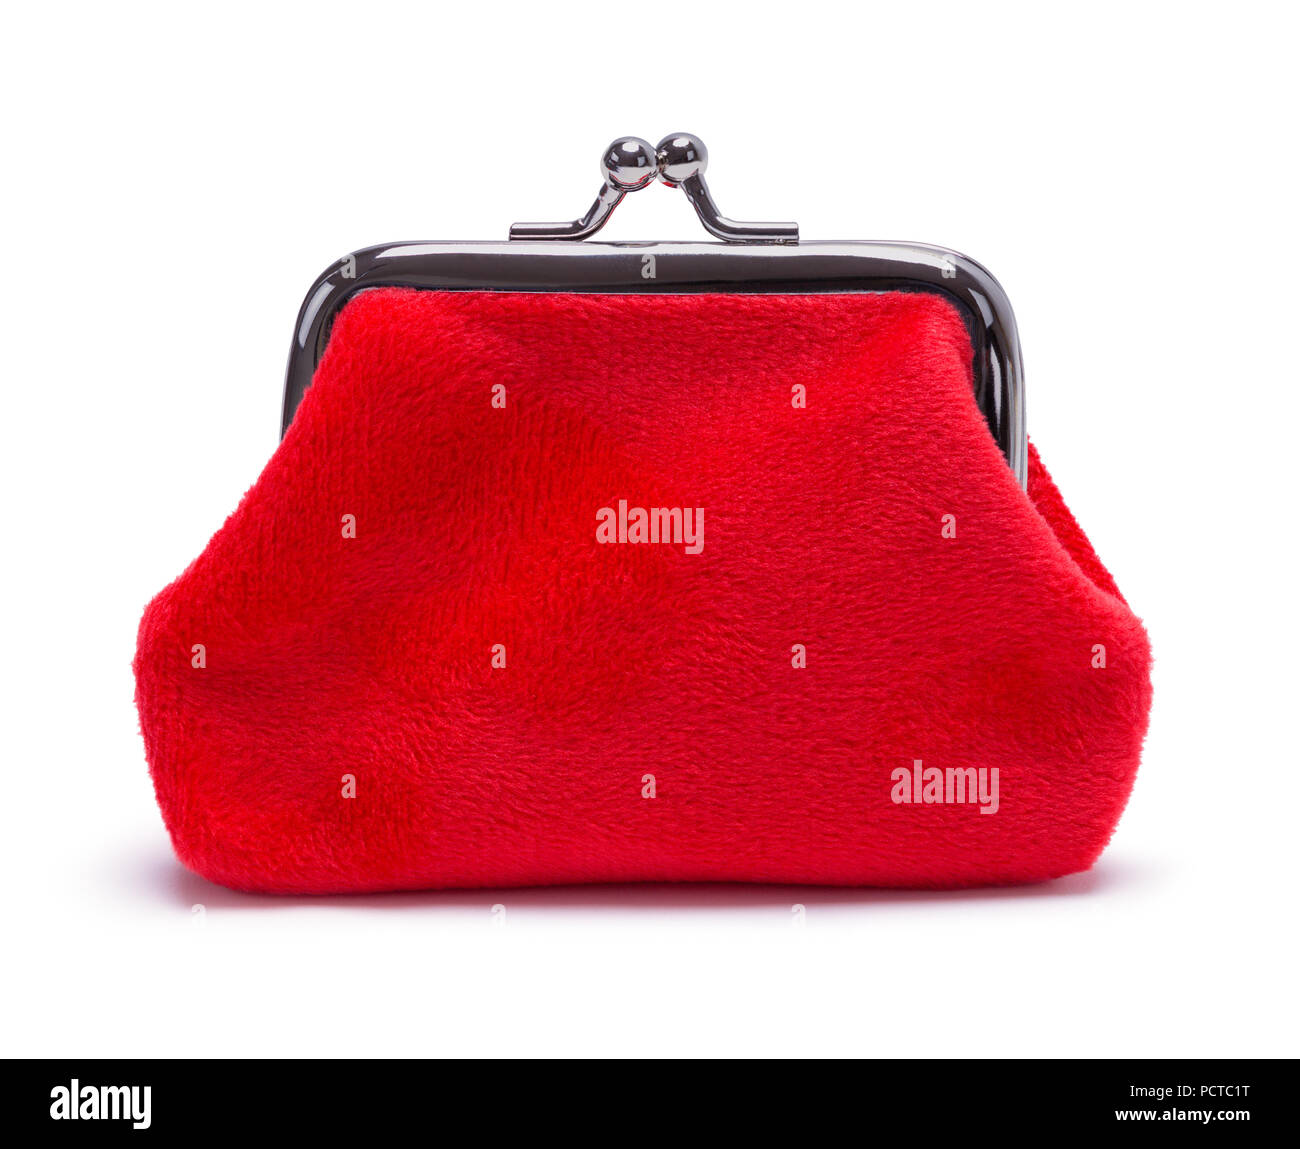 Red Velvet Coin Purse Isolated on White Background. - Stock Image